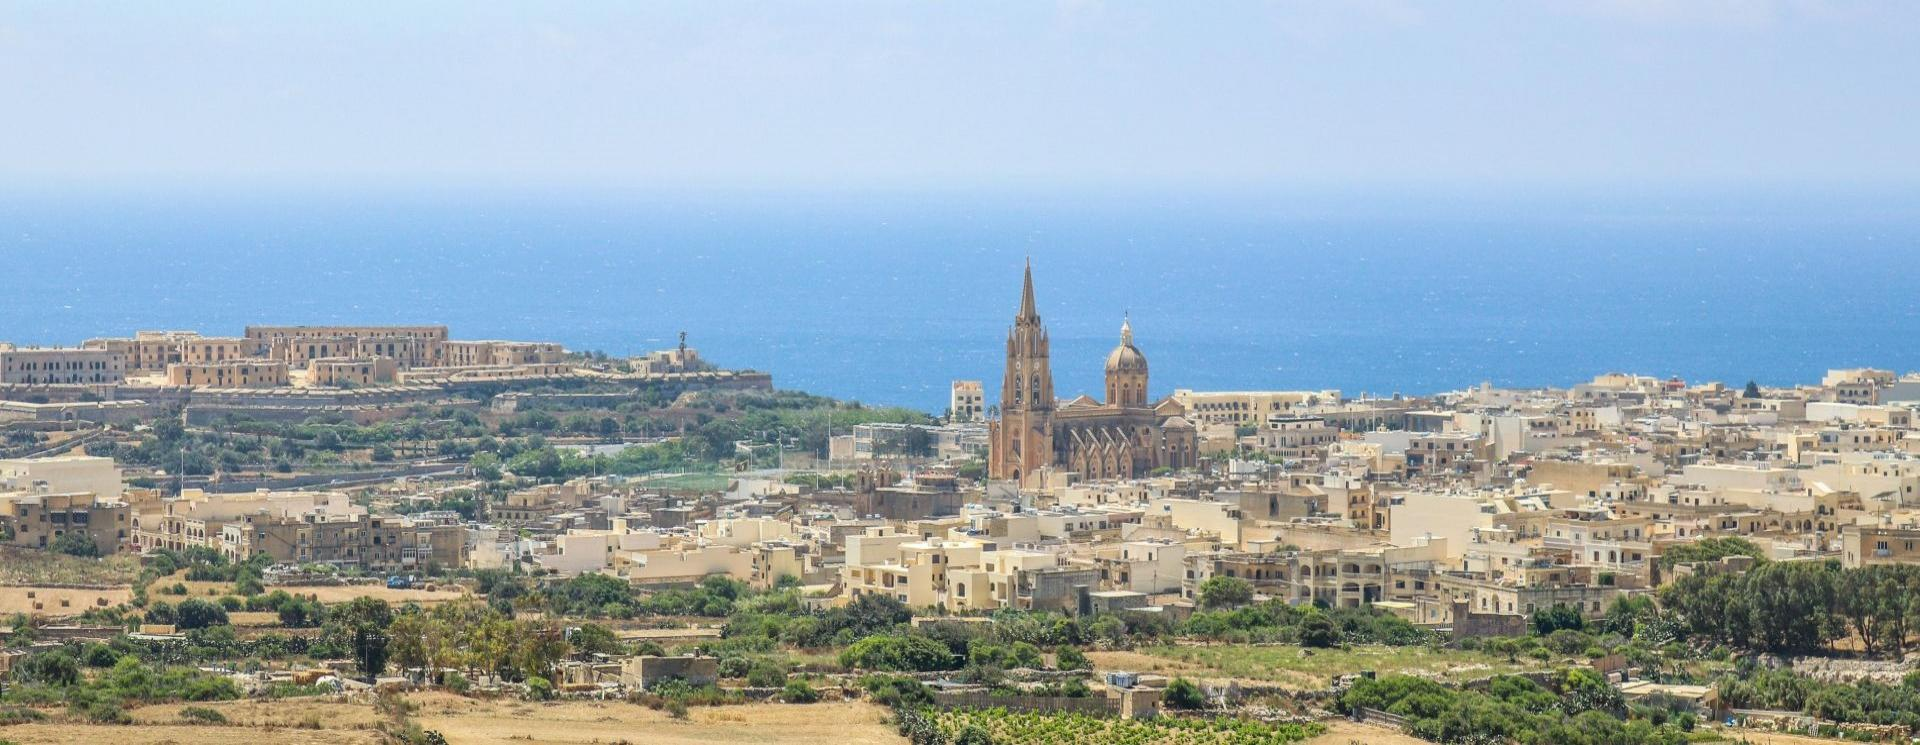 Gozo-sights